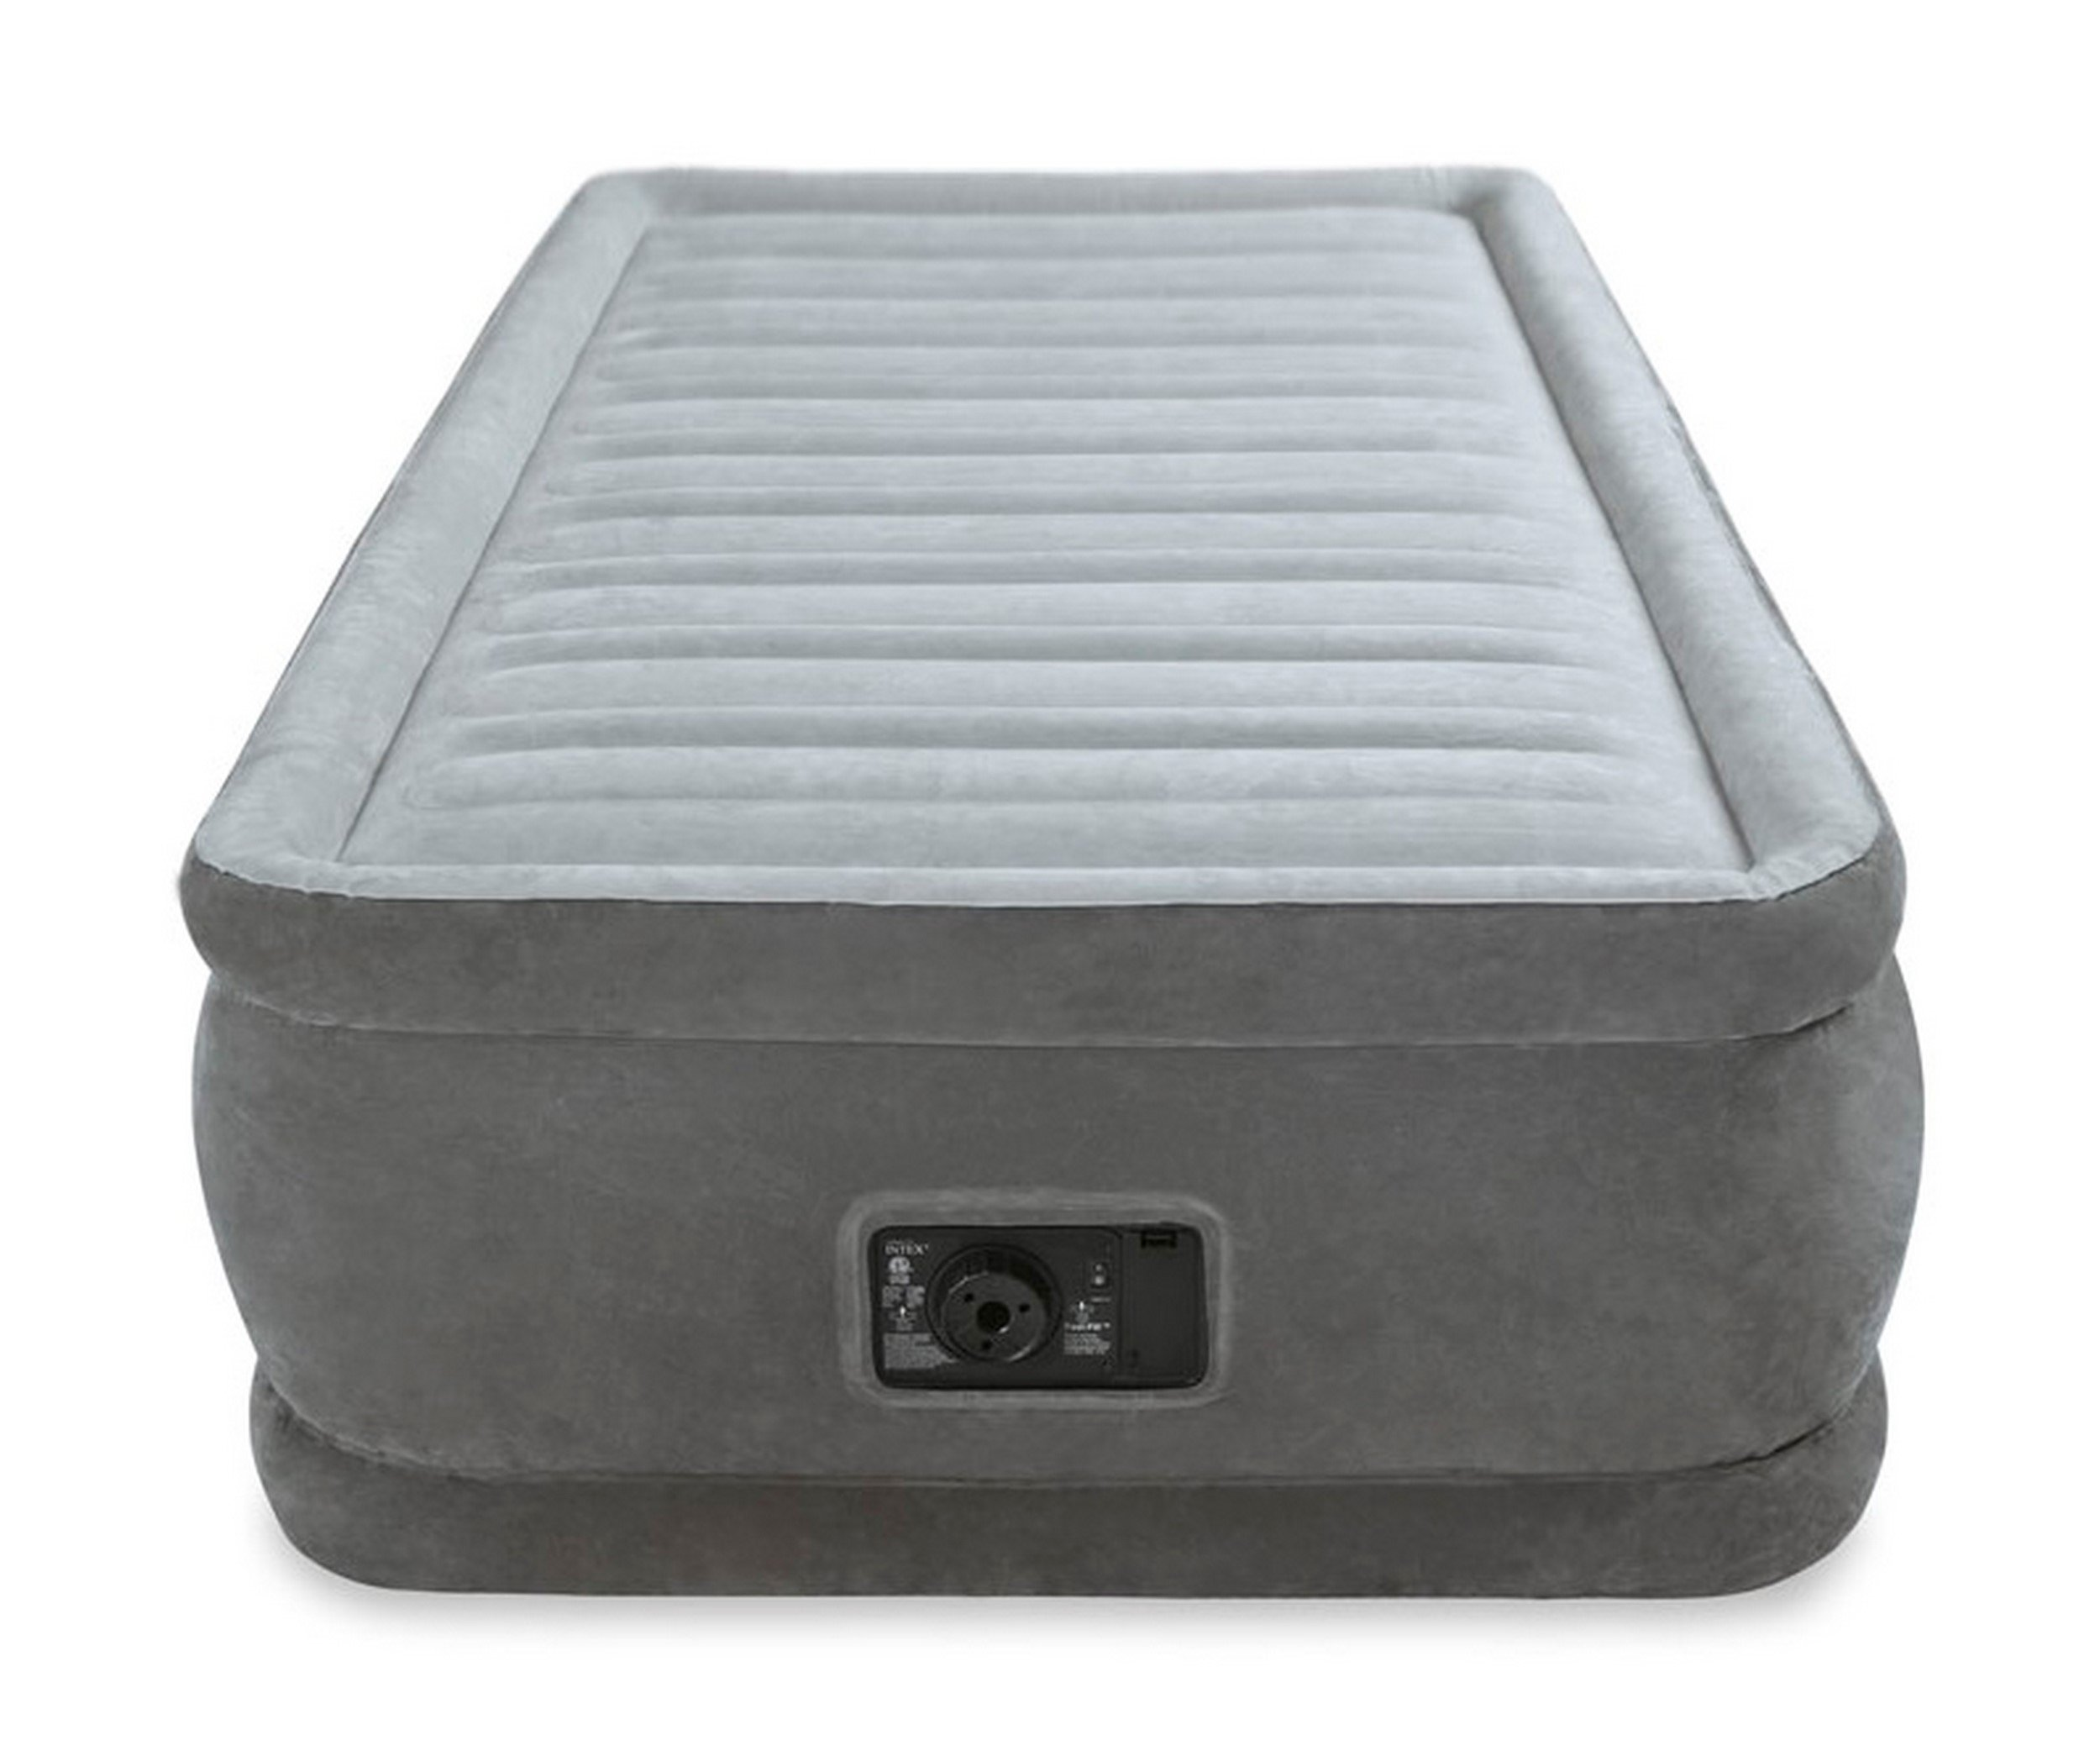 Intex Comfort Plush Elevated Dura-Beam Airbed with Built-in Electric Pump, Bed Height 18'', Twin by Intex (Image #12)